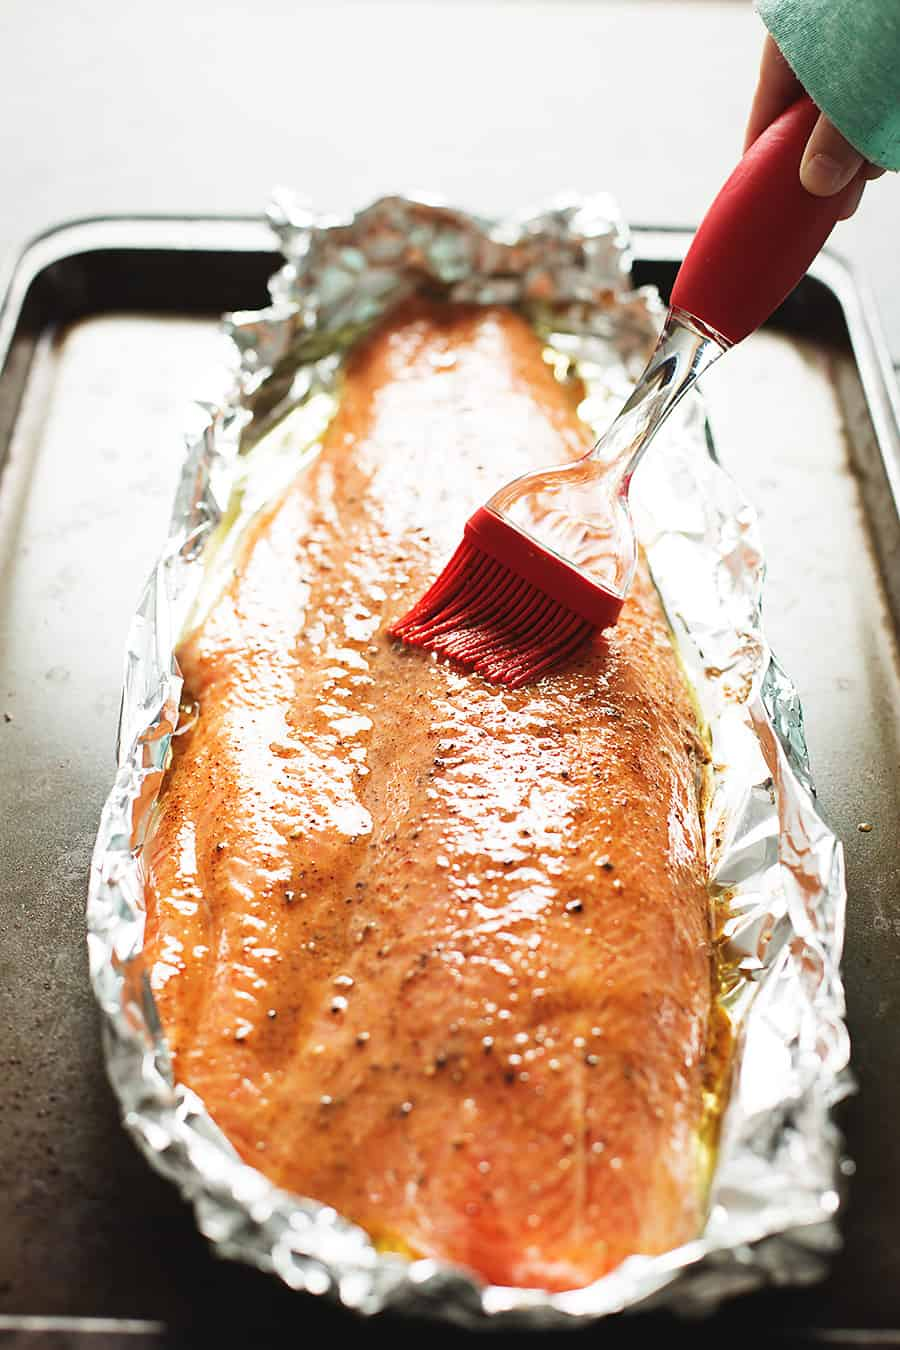 a salmon filet in foil with a basting brush